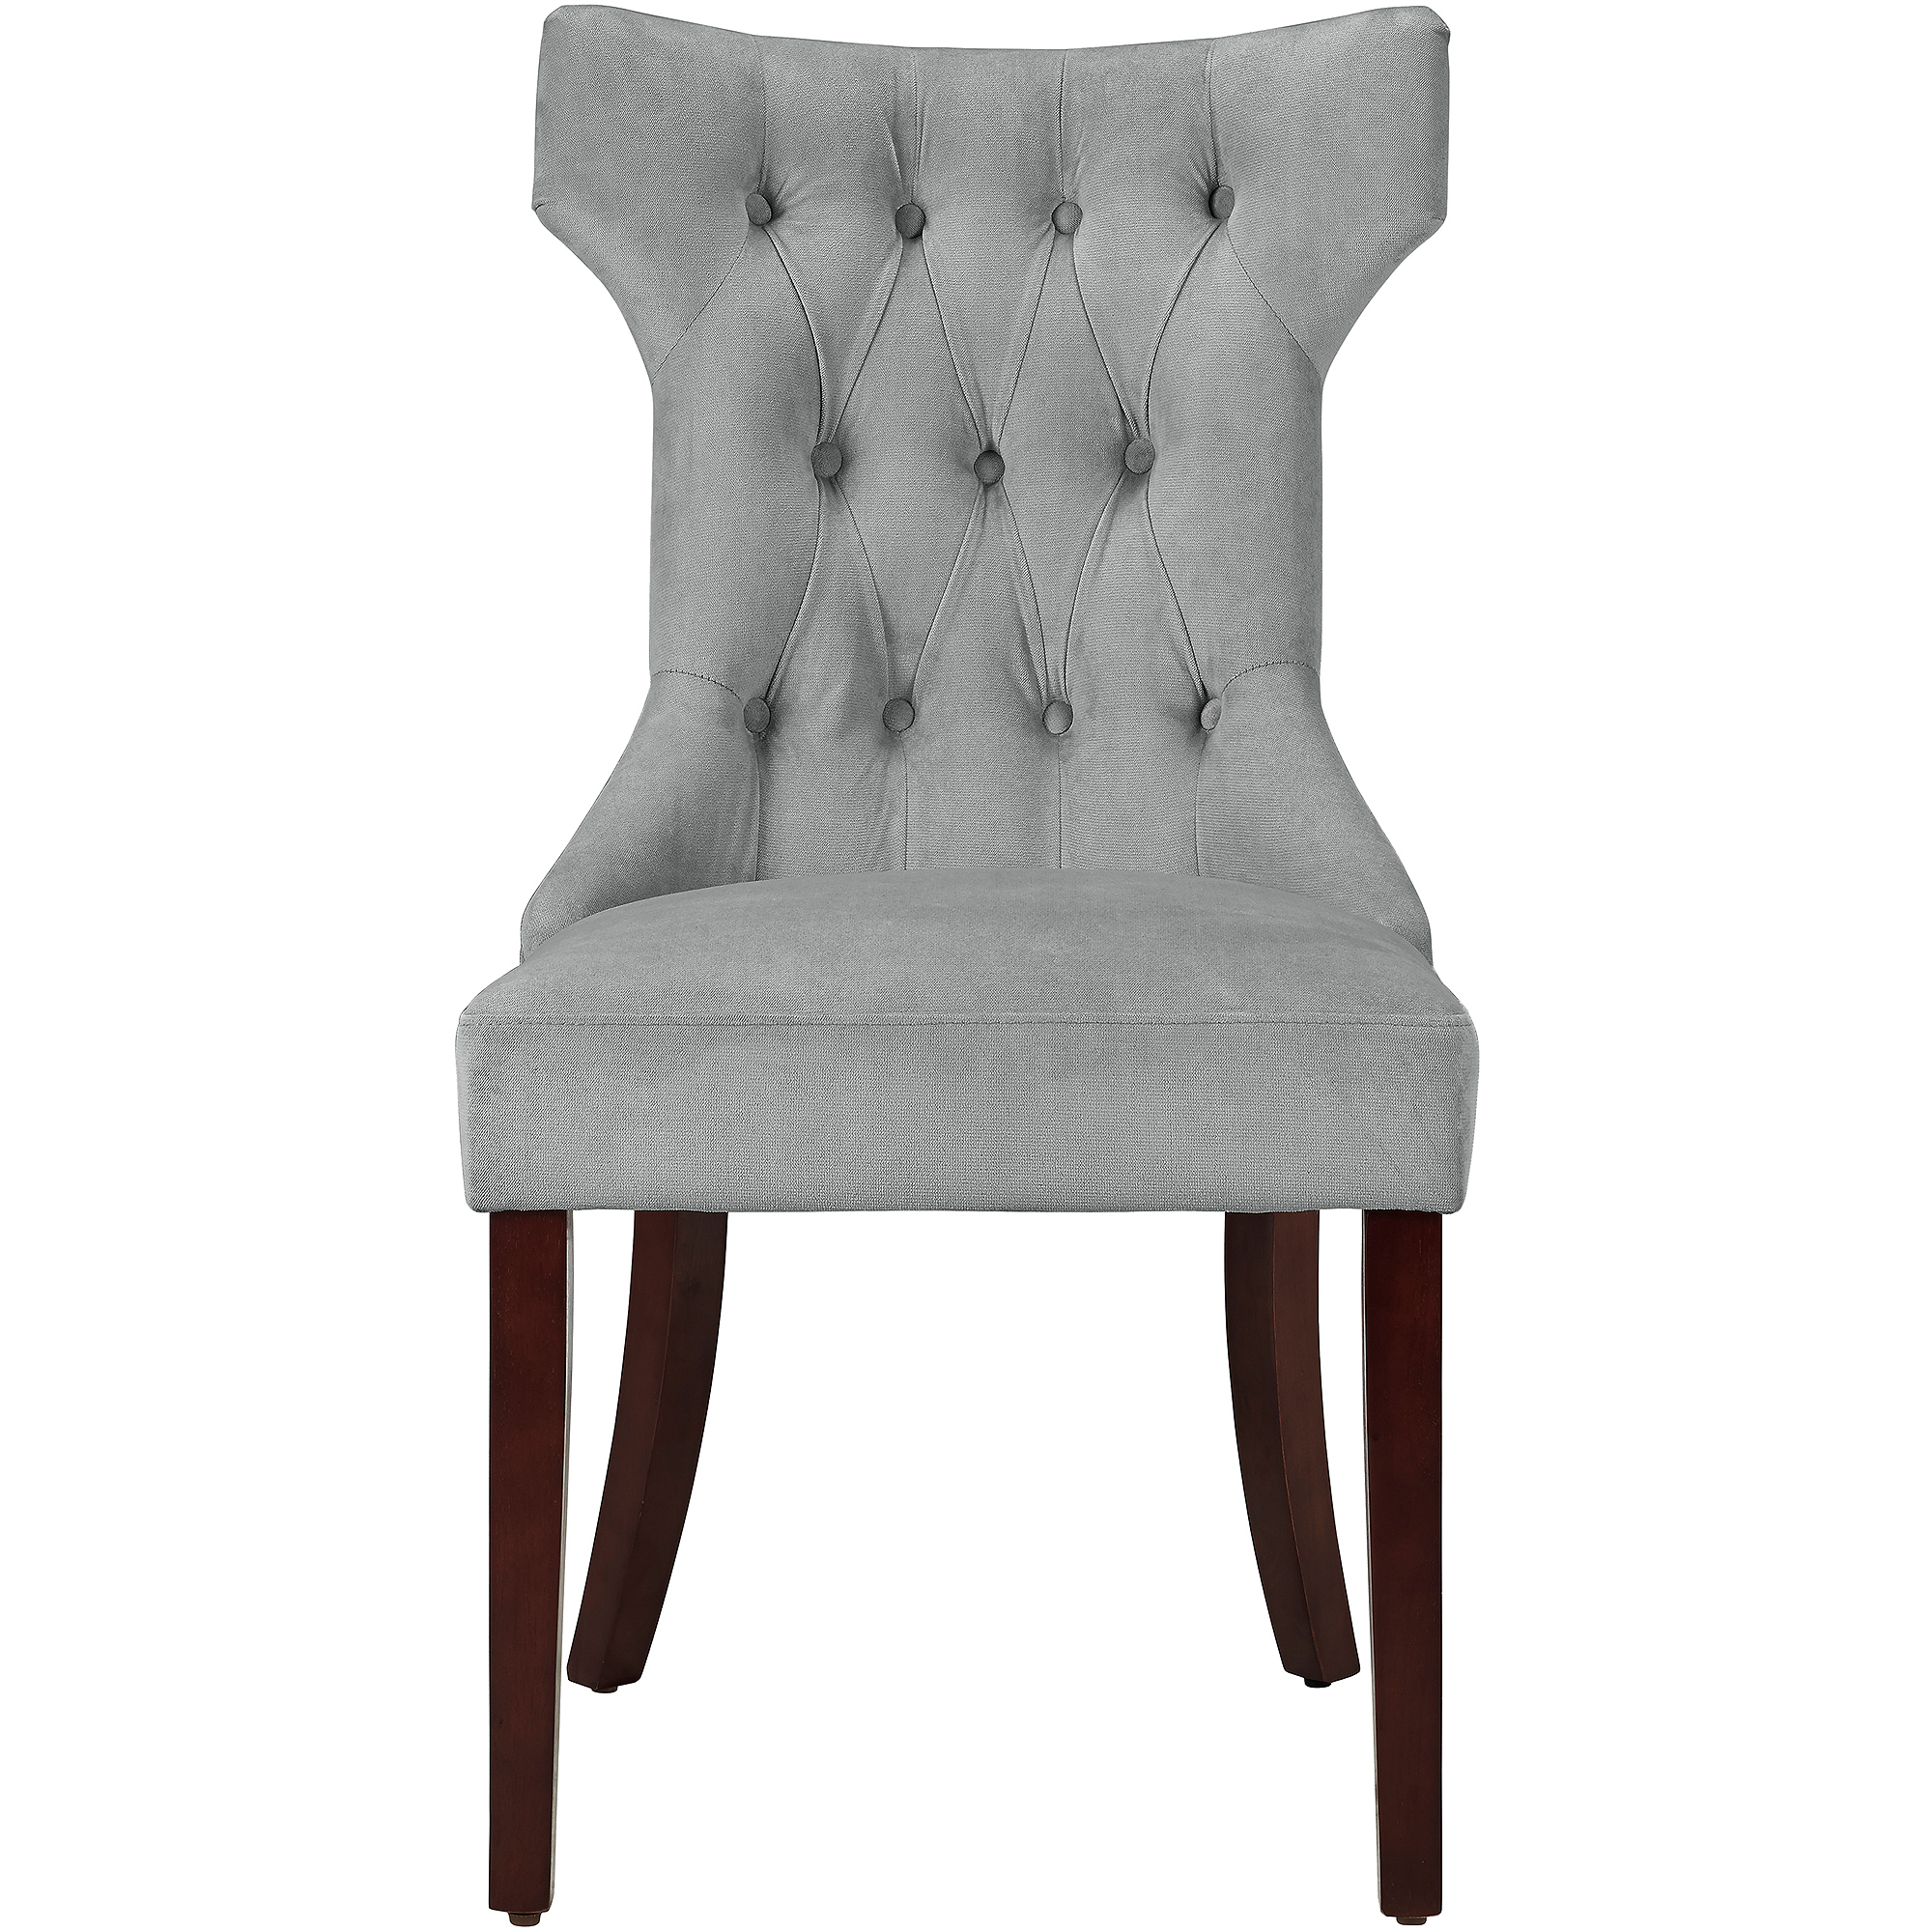 Dorel Living Clairborne Tufted Dining Chair Set of 2 Walmart